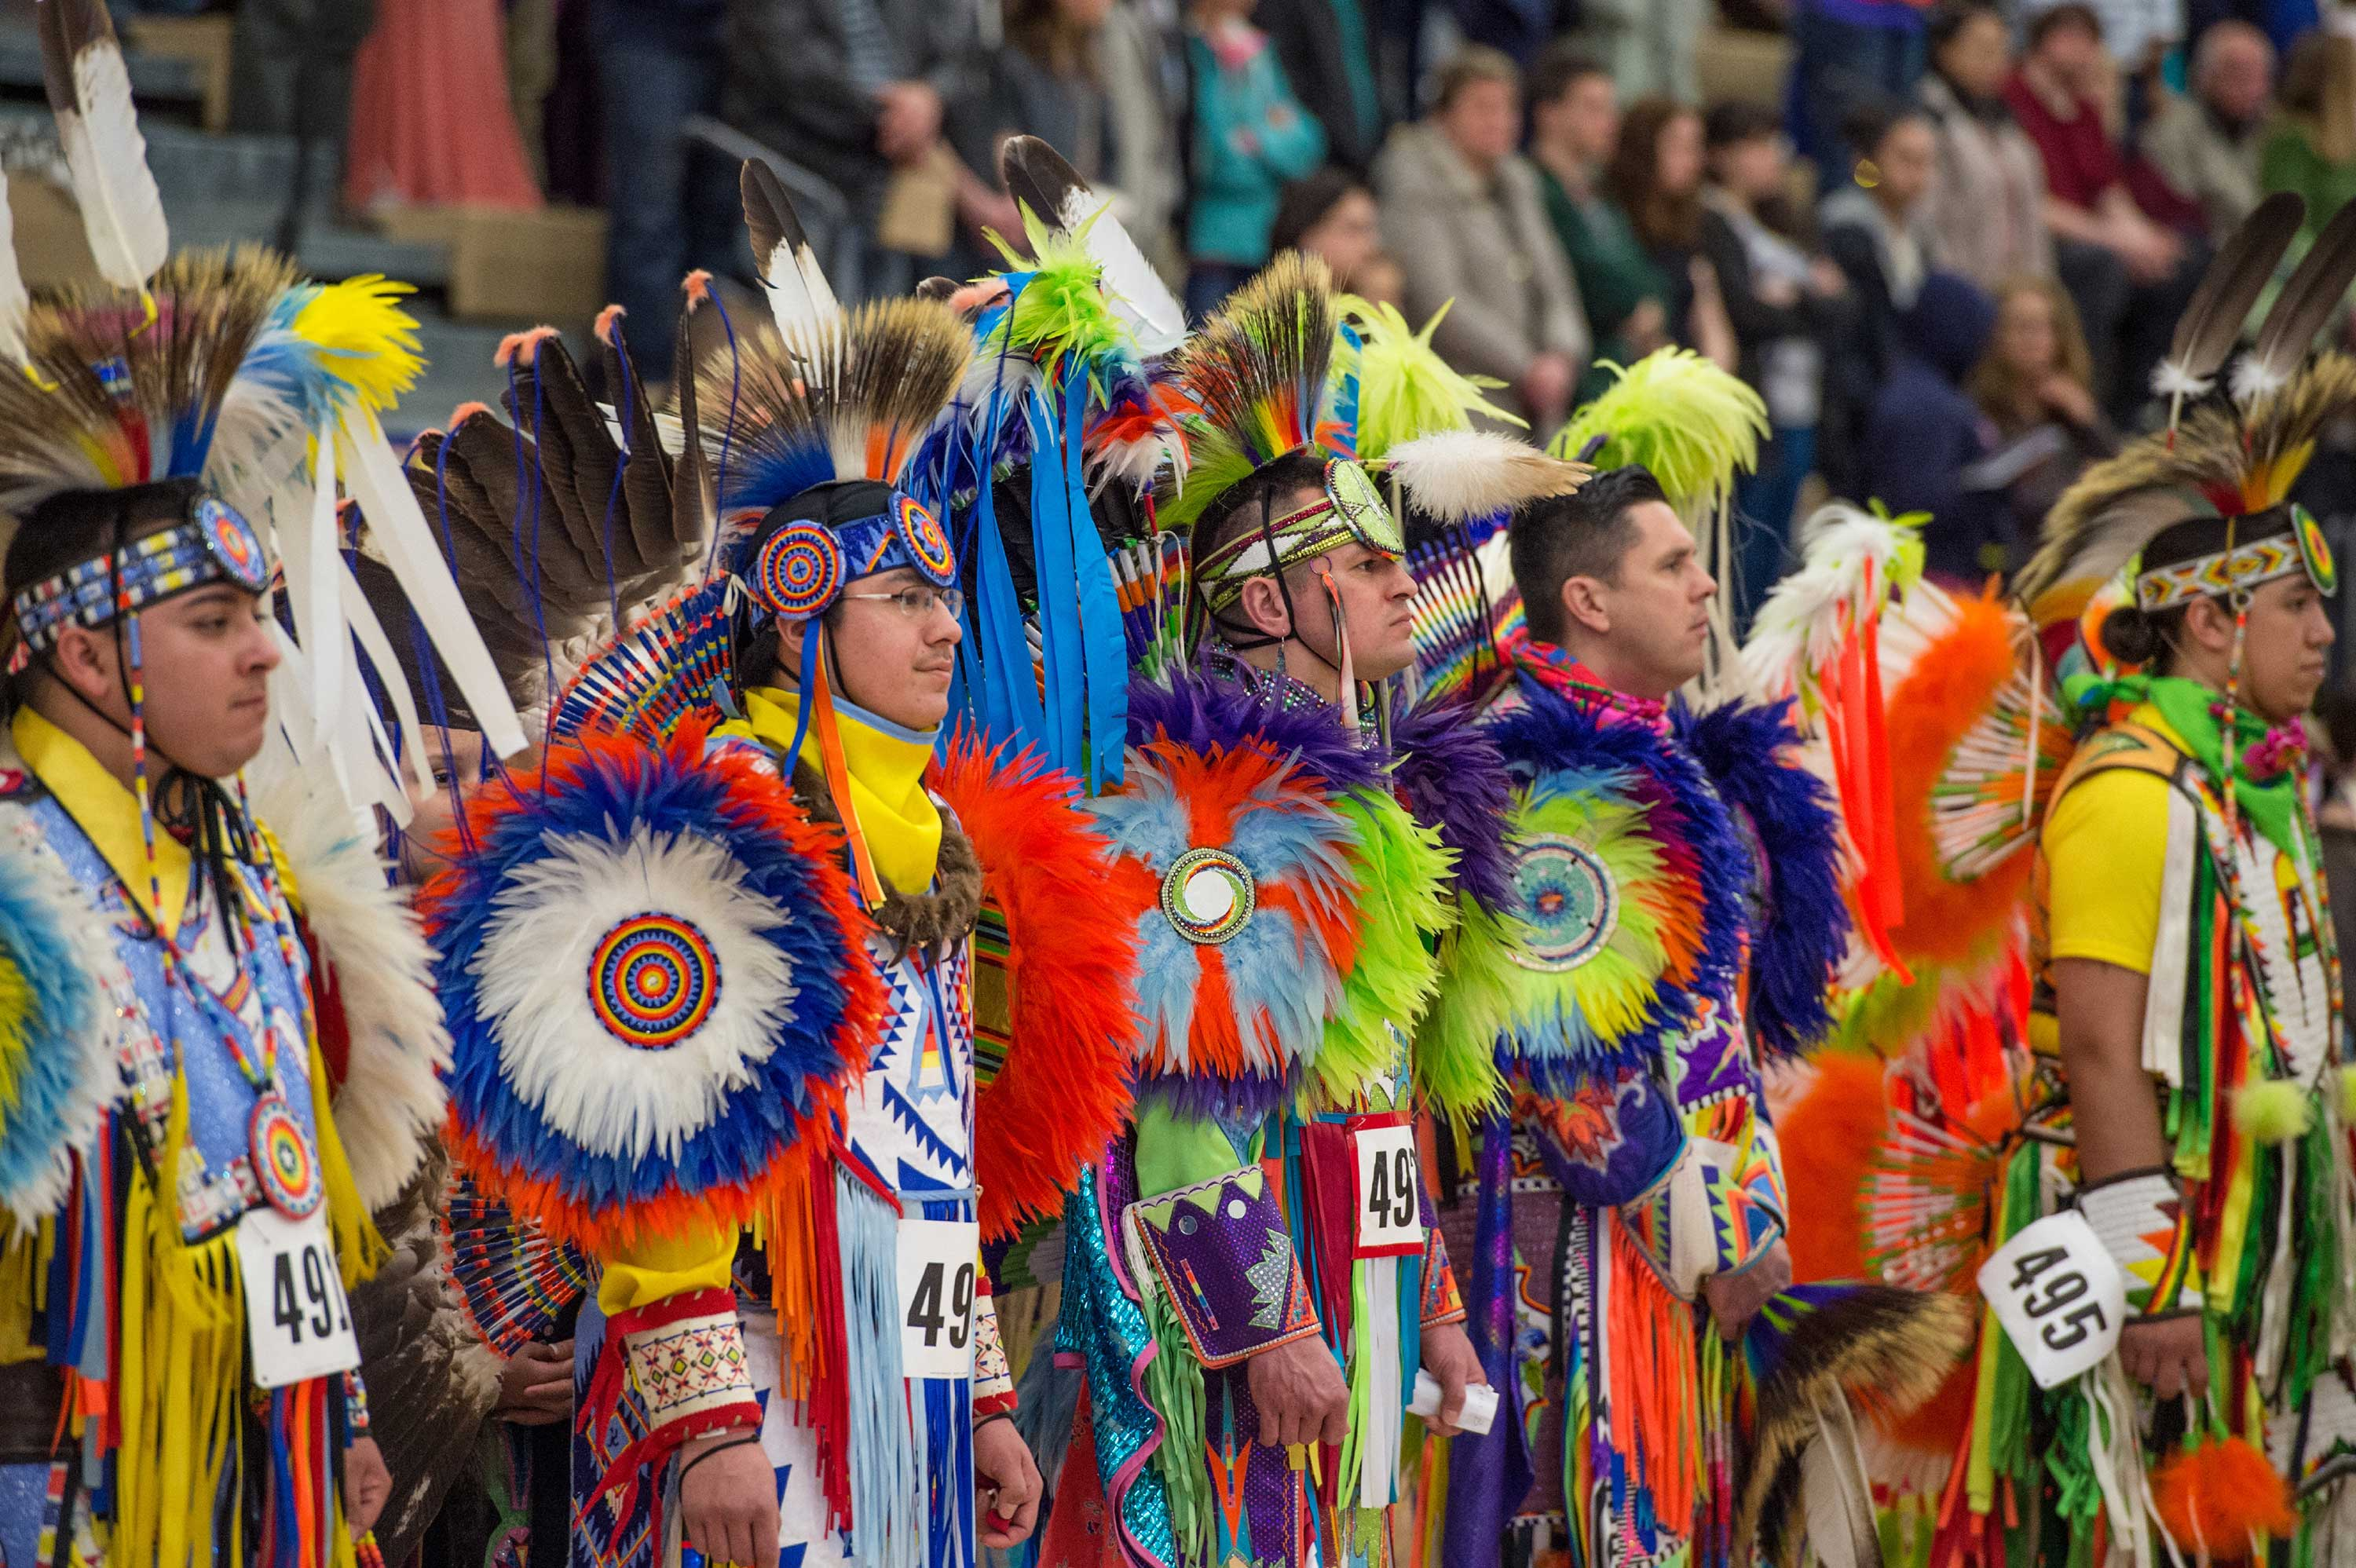 Each year, the Native American Student Association at U-M hosts the Dance for Mother Earth Powwow for the local community. It is one of the largest university powwows in the country.